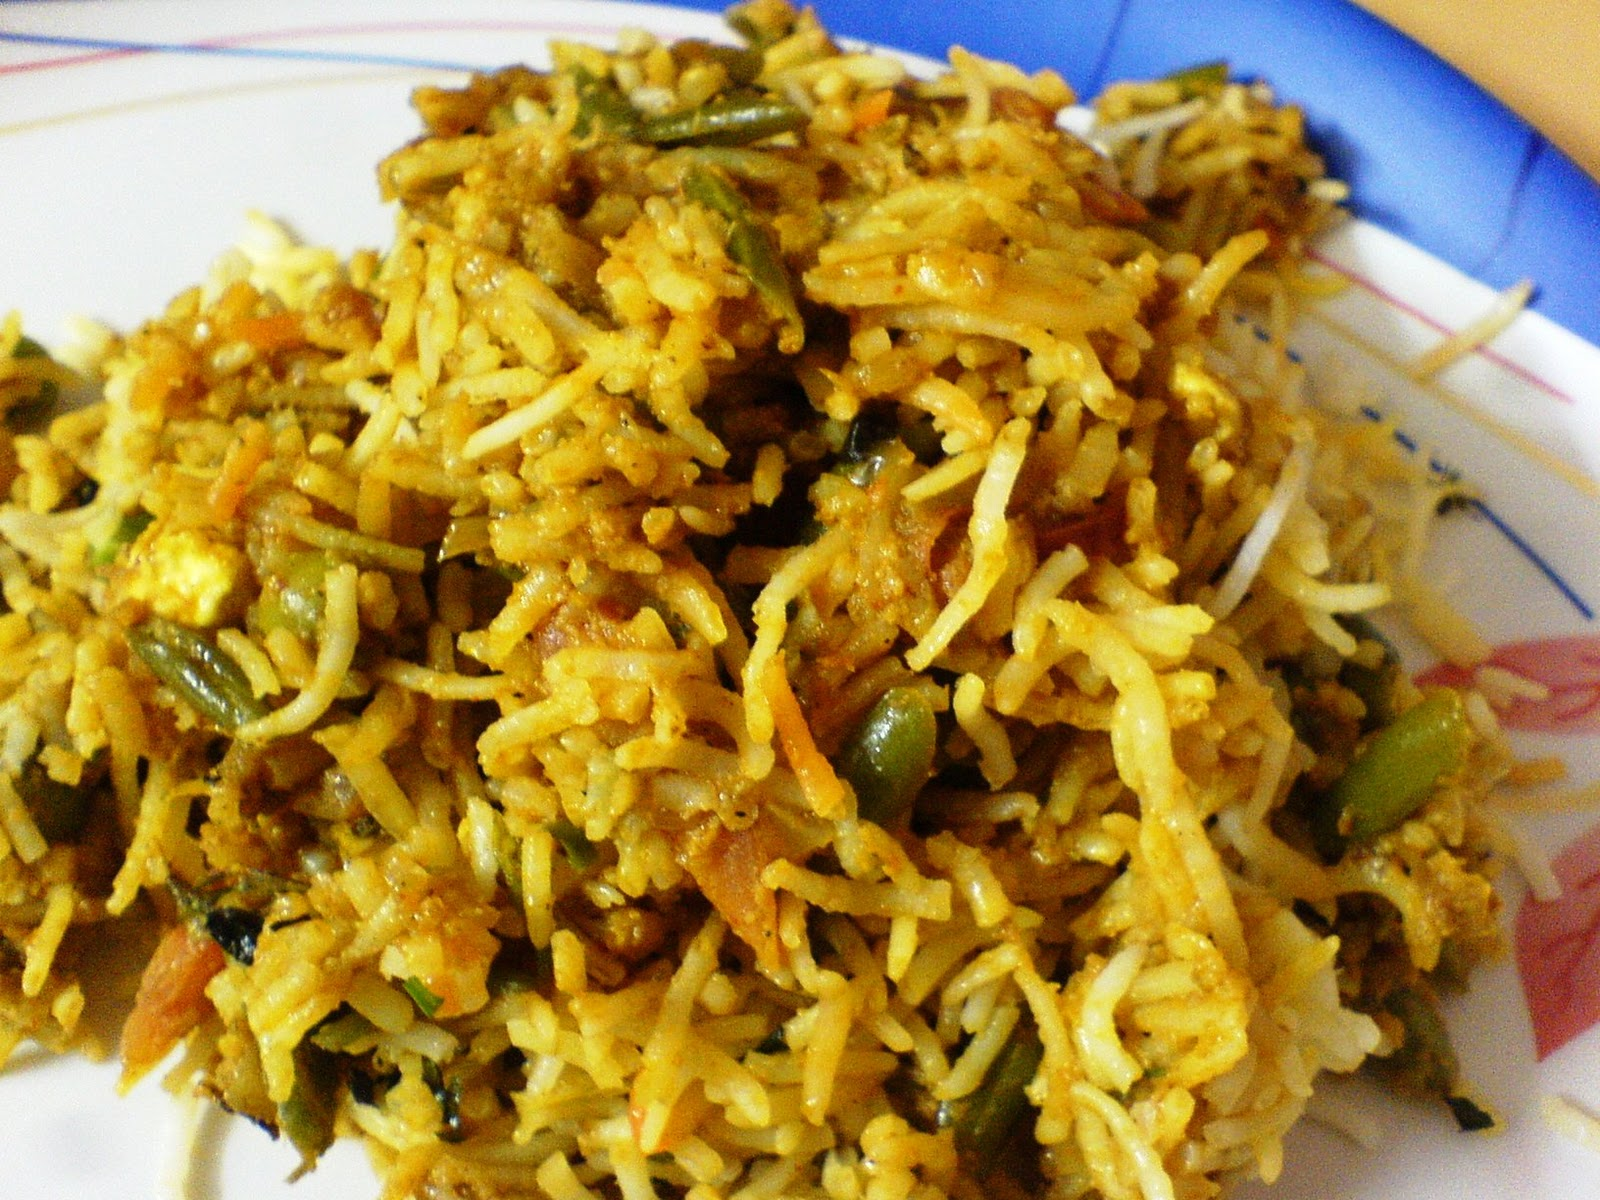 RAWk Me!: Veg Biryani and Cabbage, Onion, Tomato Upma